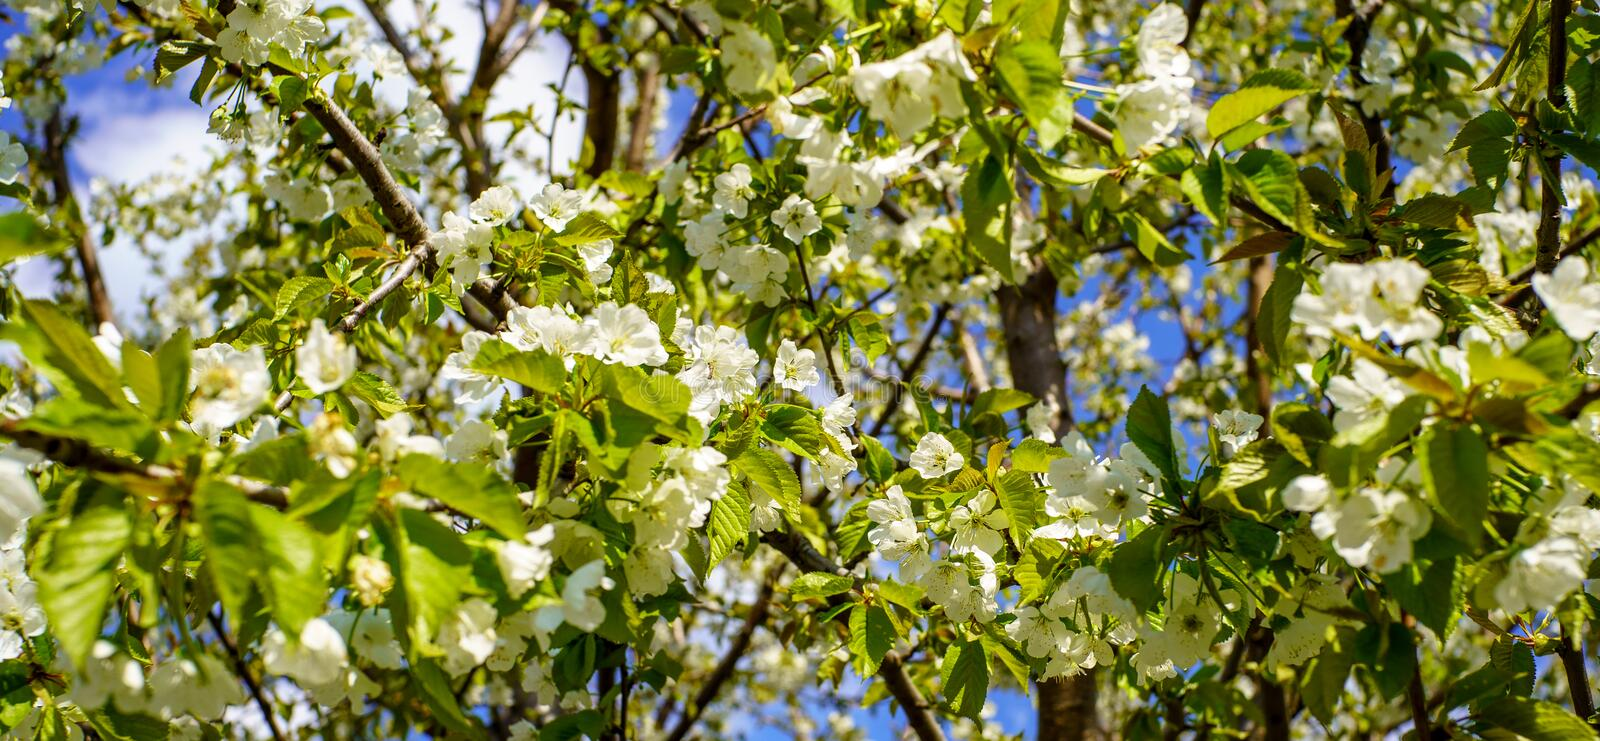 Flowering cherry tree with beautiful blossom white flowers and young green leaves against blue sky in the garden in sunshine day stock images